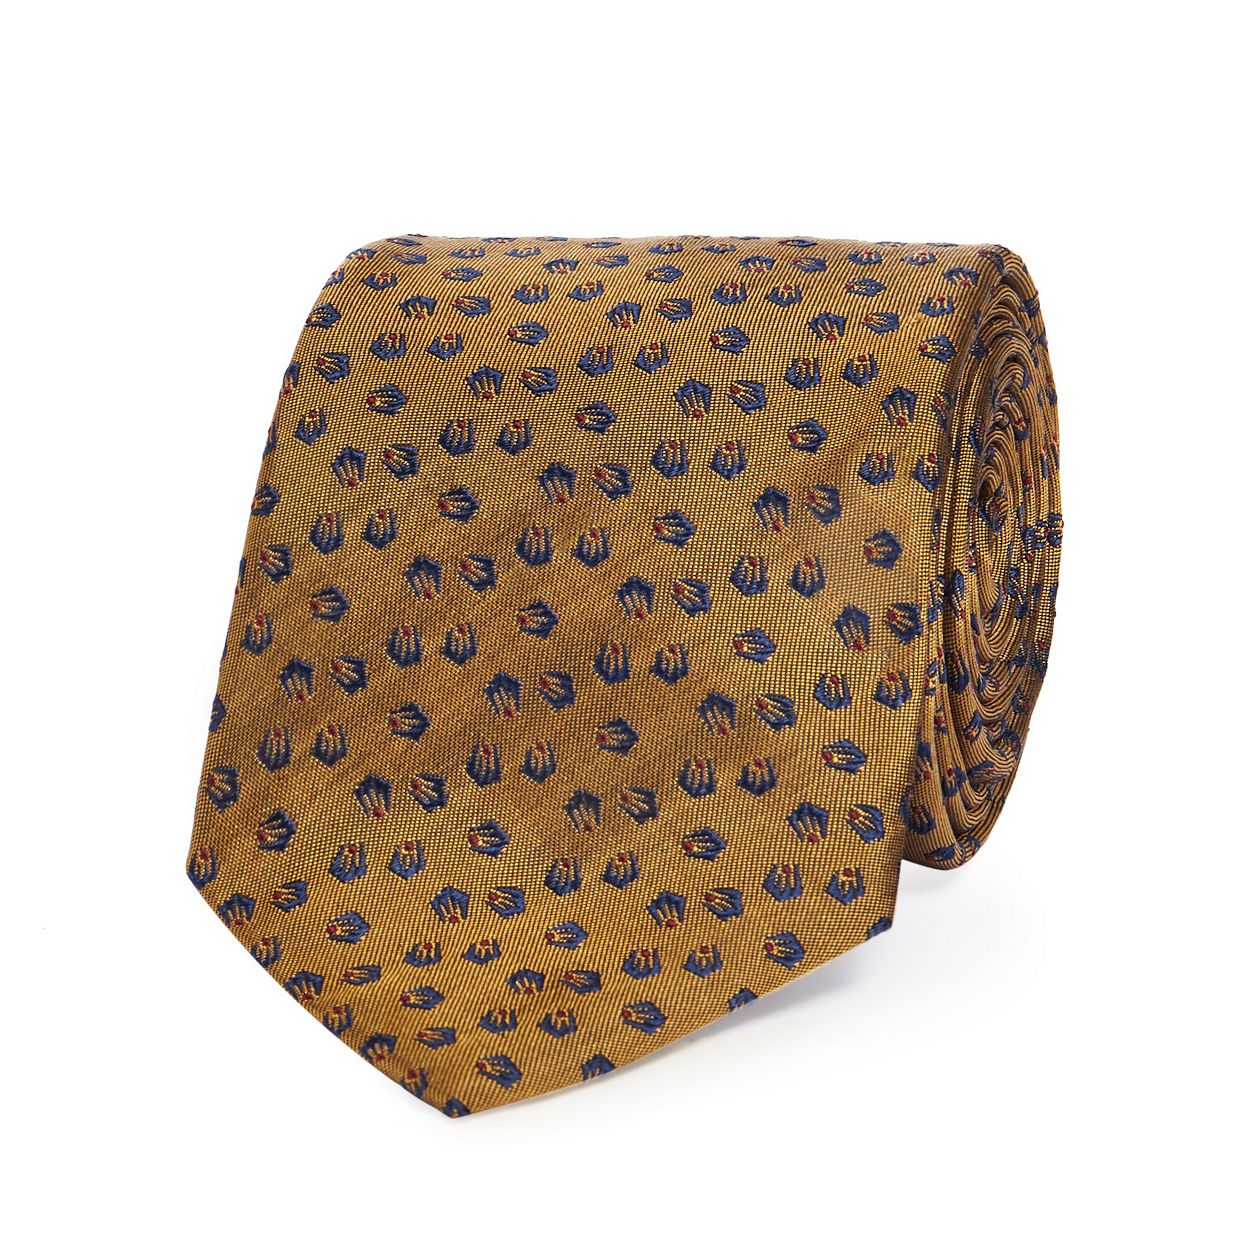 Hammond & Co. by Patrick Grant Gold textured patterned silk tie